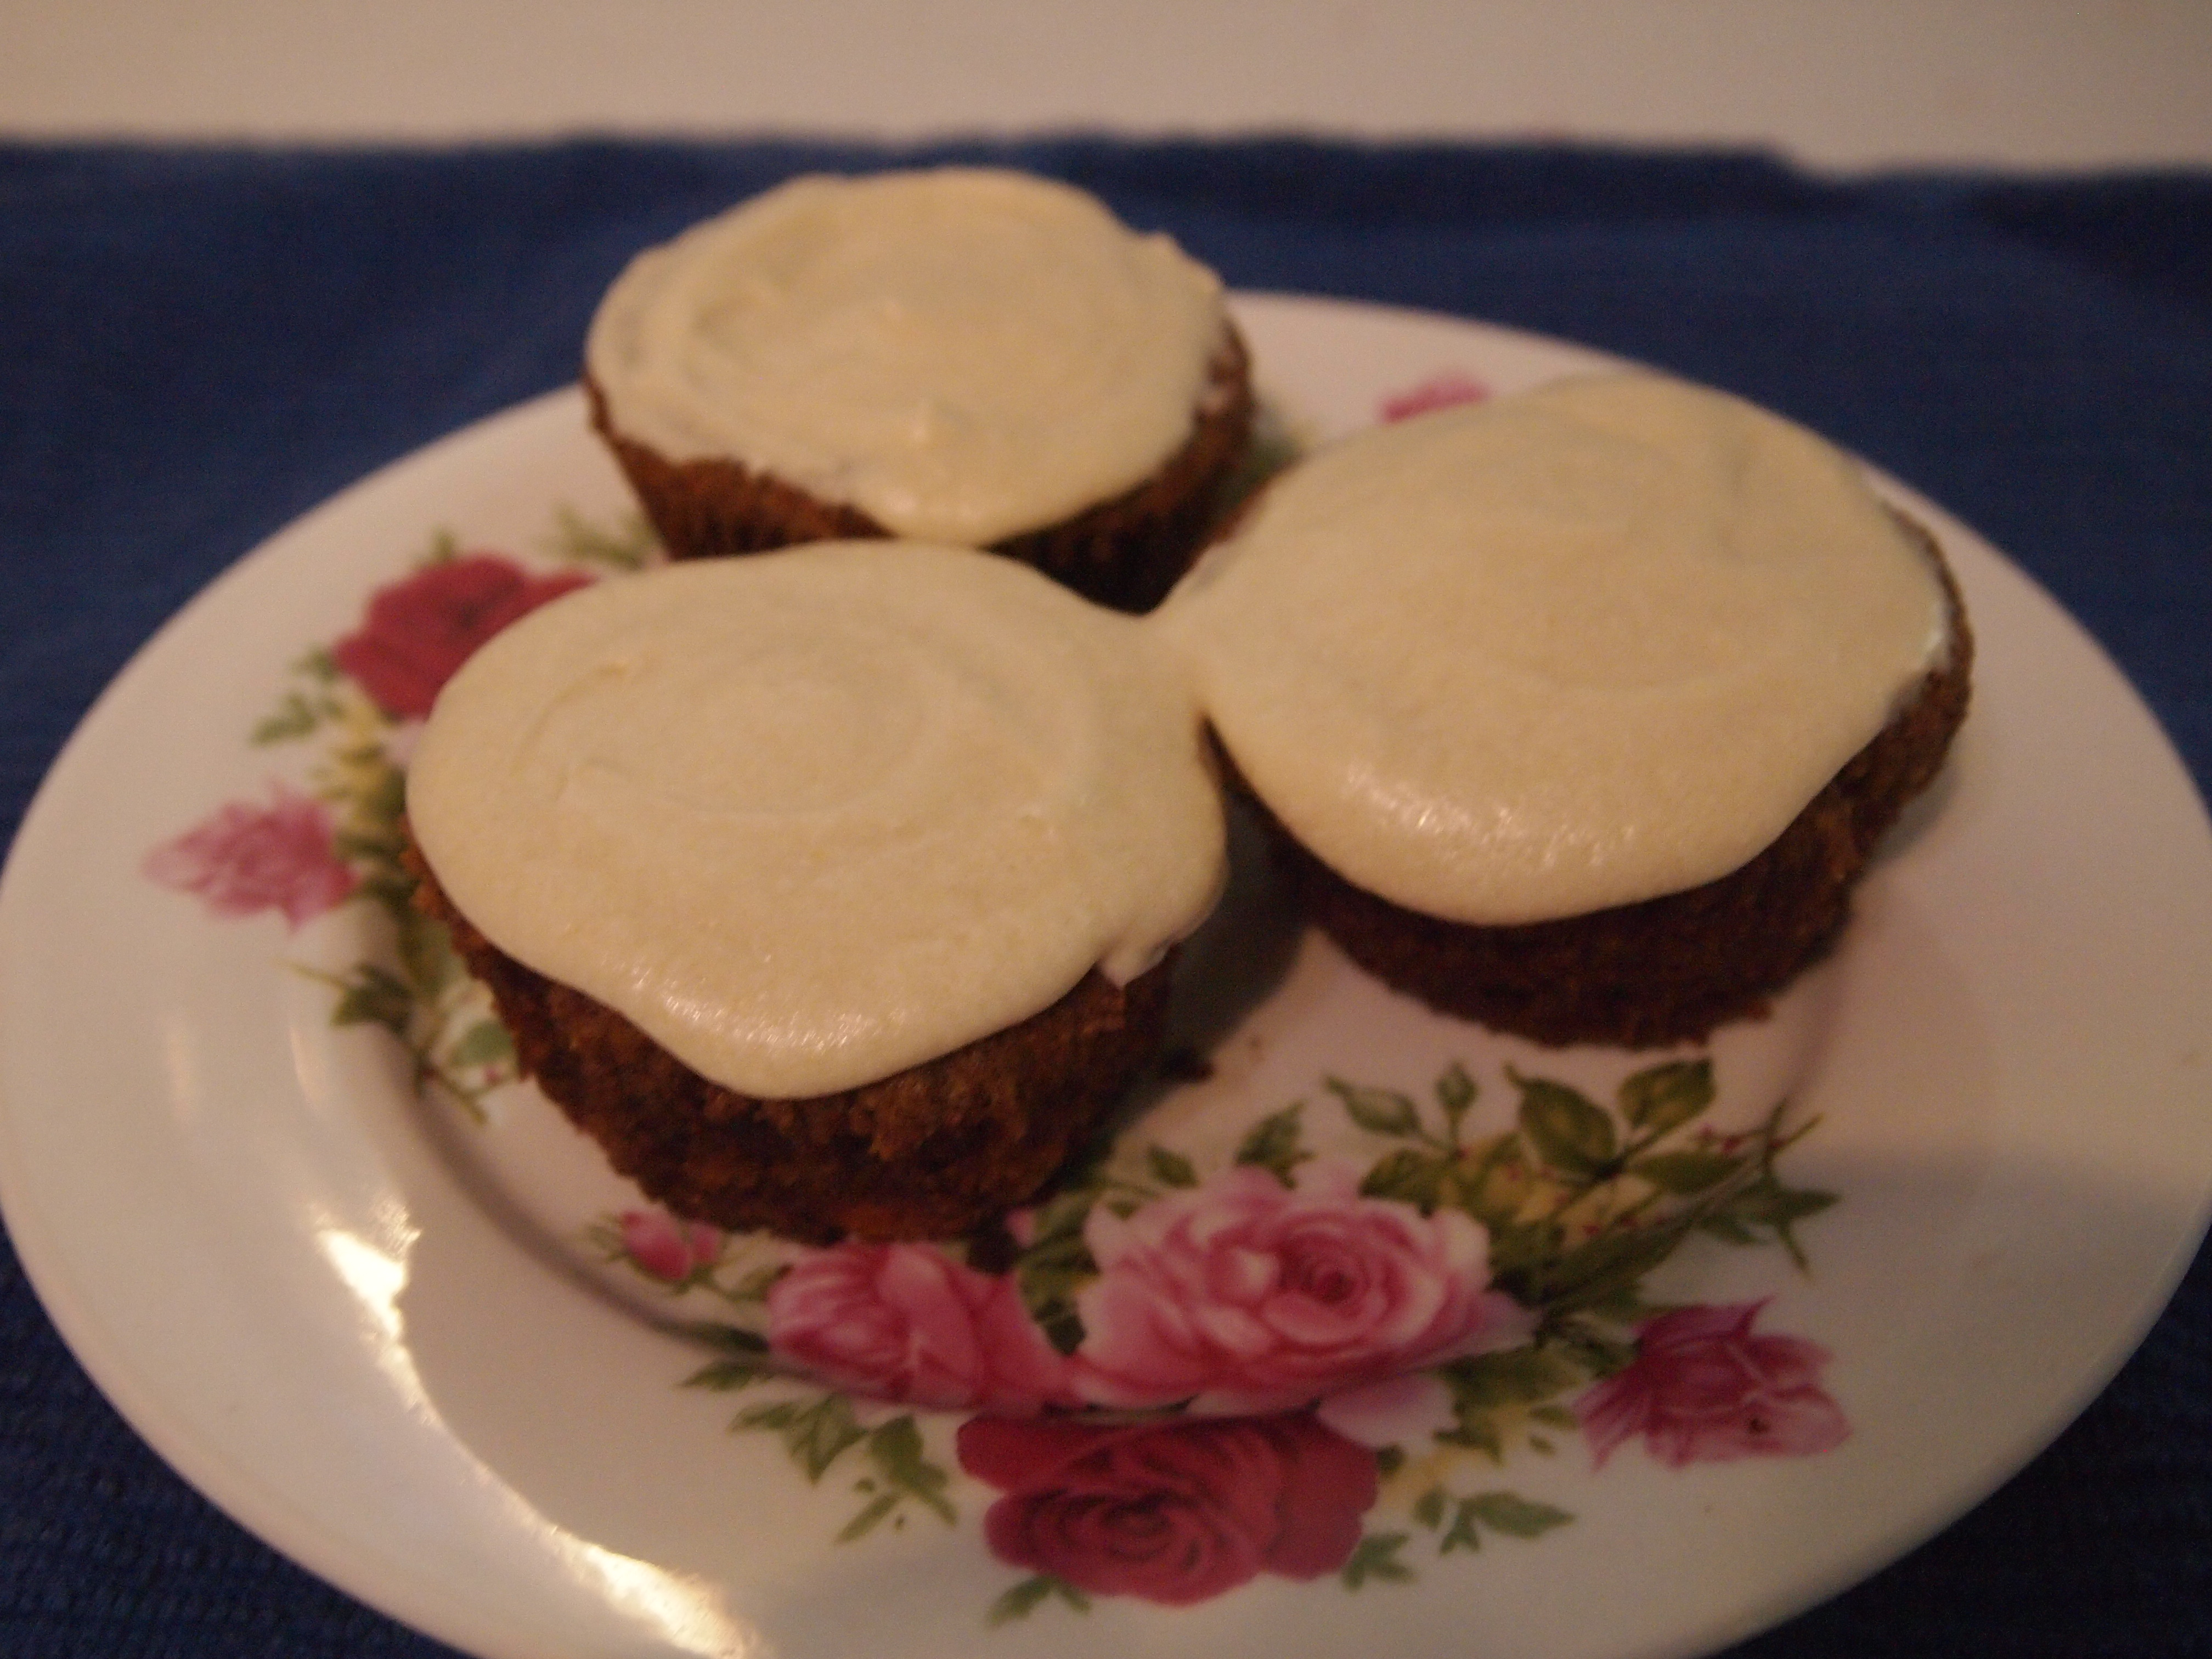 ... , Dairy and Egg Free Over-spiced Carrot Cupcakes with Orange Icing